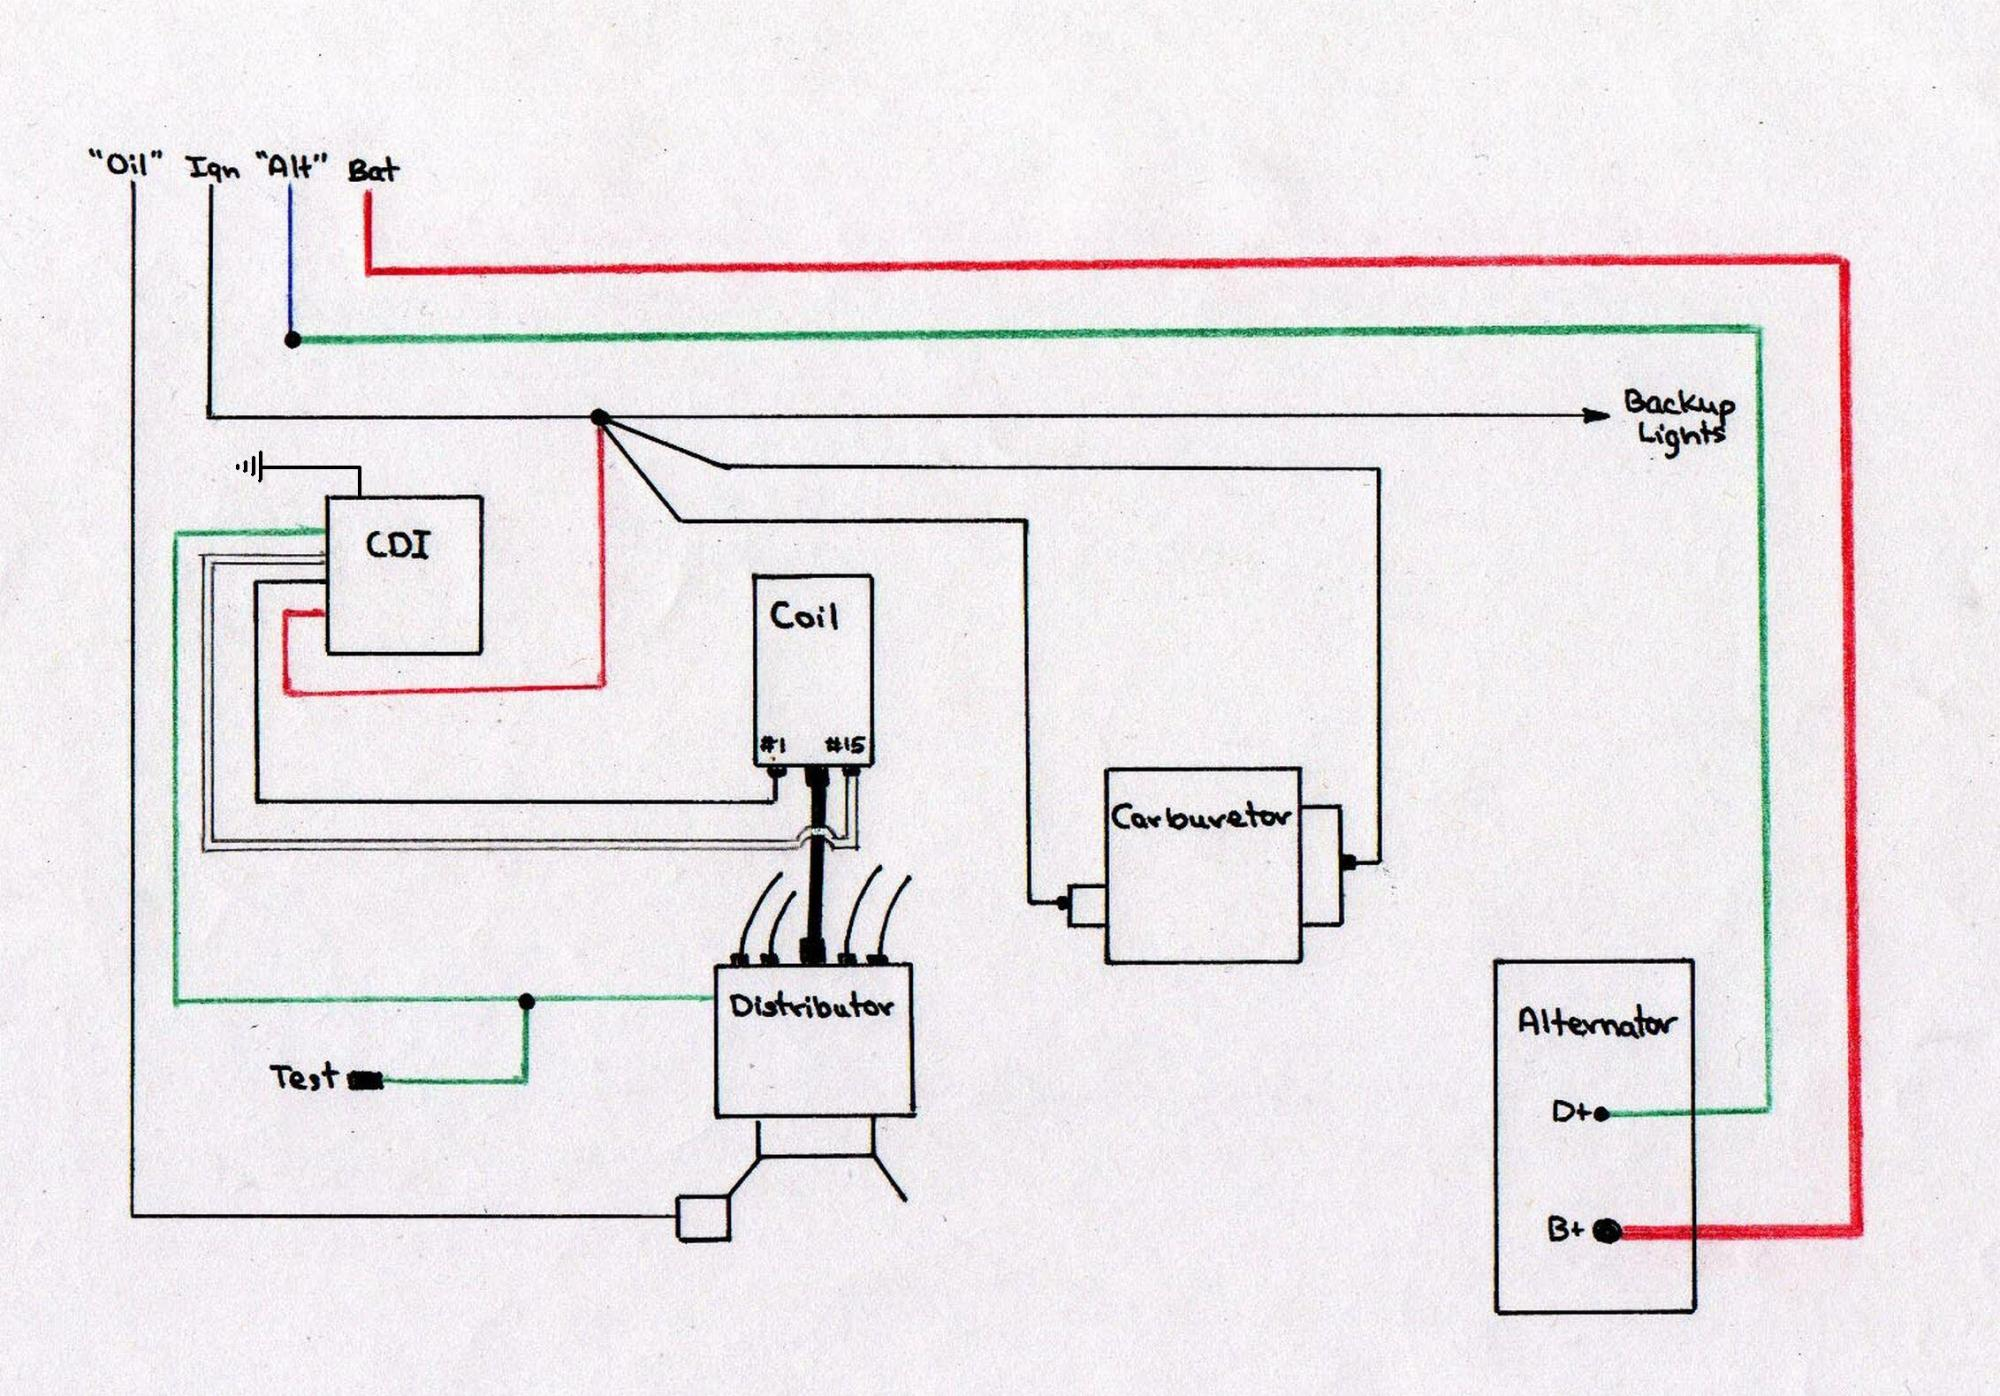 hight resolution of vw ignition wiring wiring diagram 1970 vw coil amp dist wiring diagram